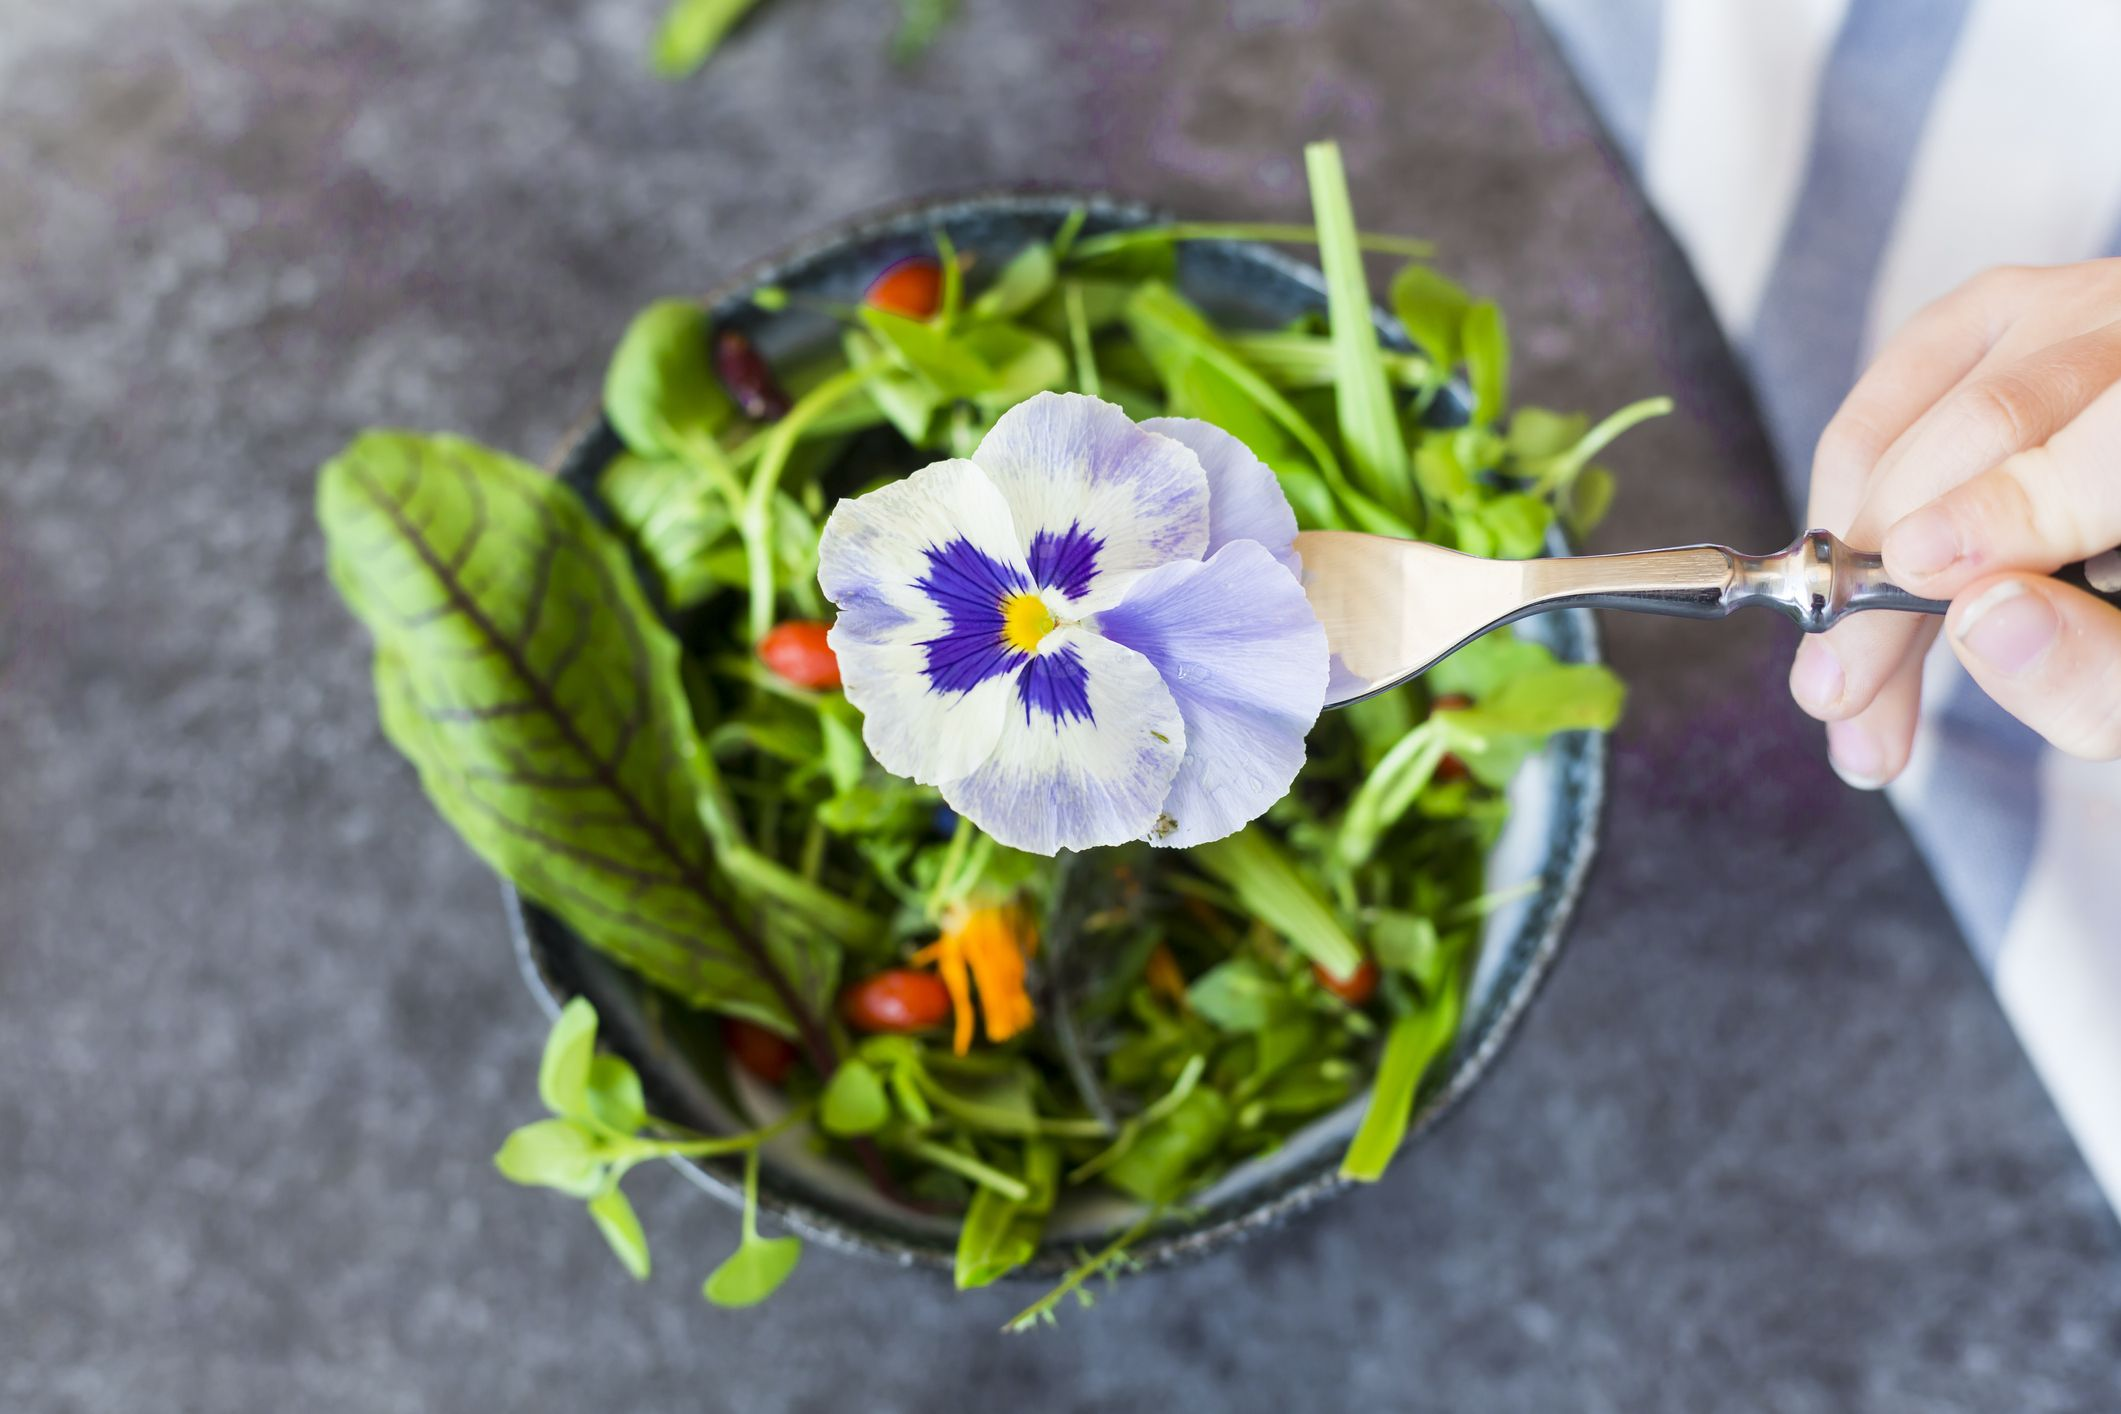 11 unusual edible flower recipes to try straight from your garden flower beds